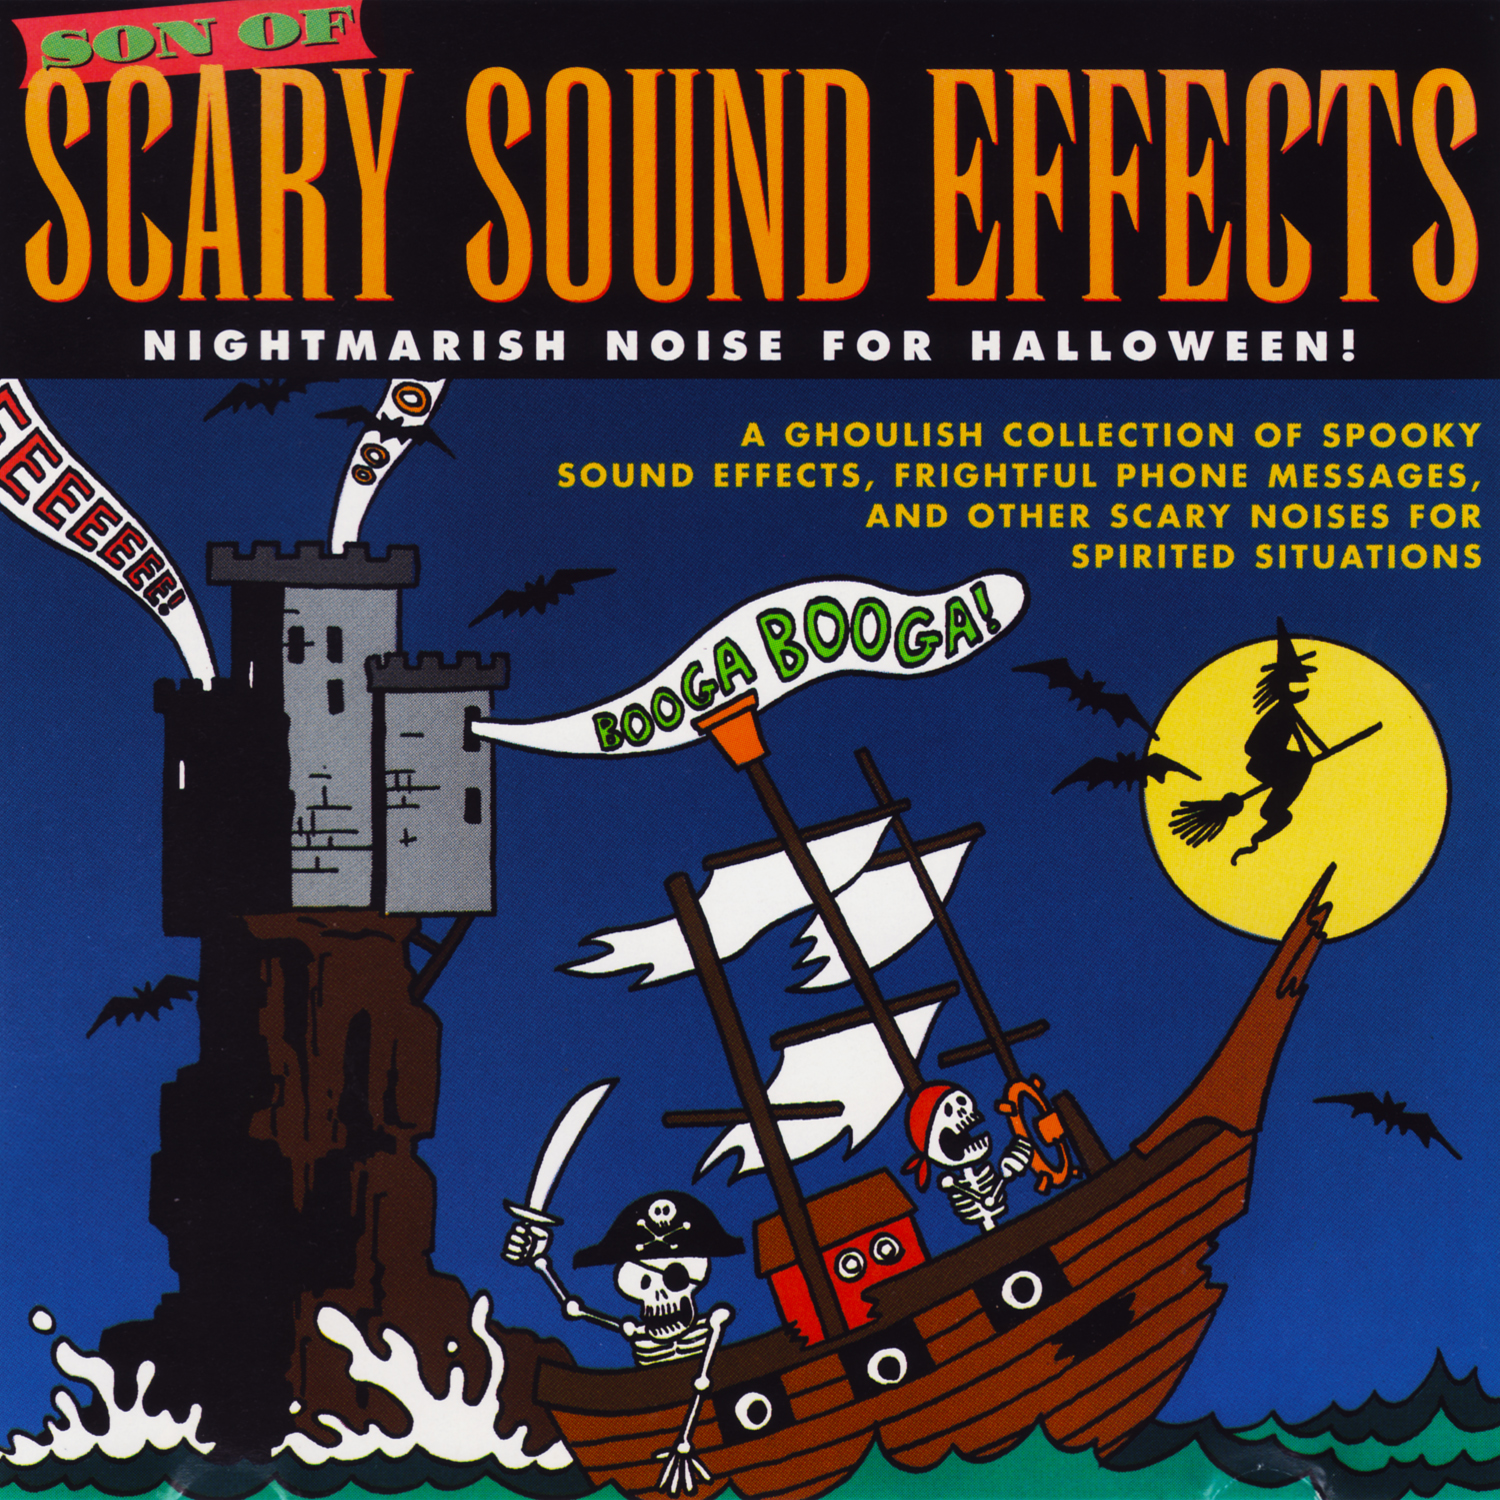 son of scary sound effects nightmarish noise for halloween